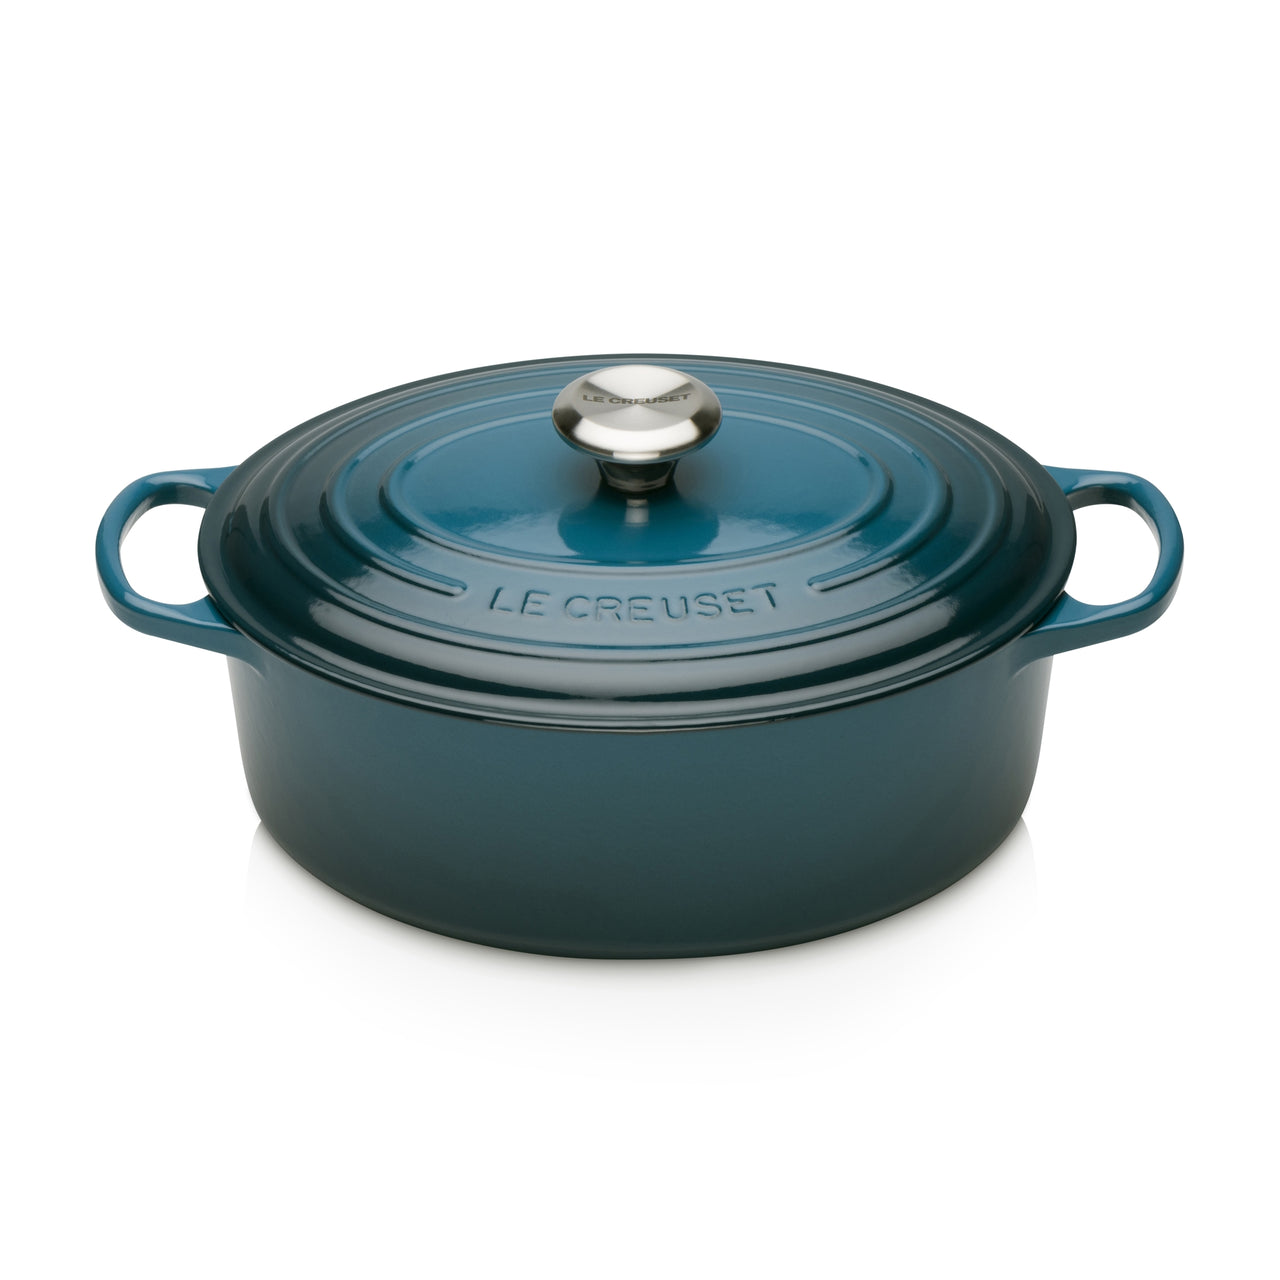 Le Creuset Signature Cast Iron Oval Casserole - Teal